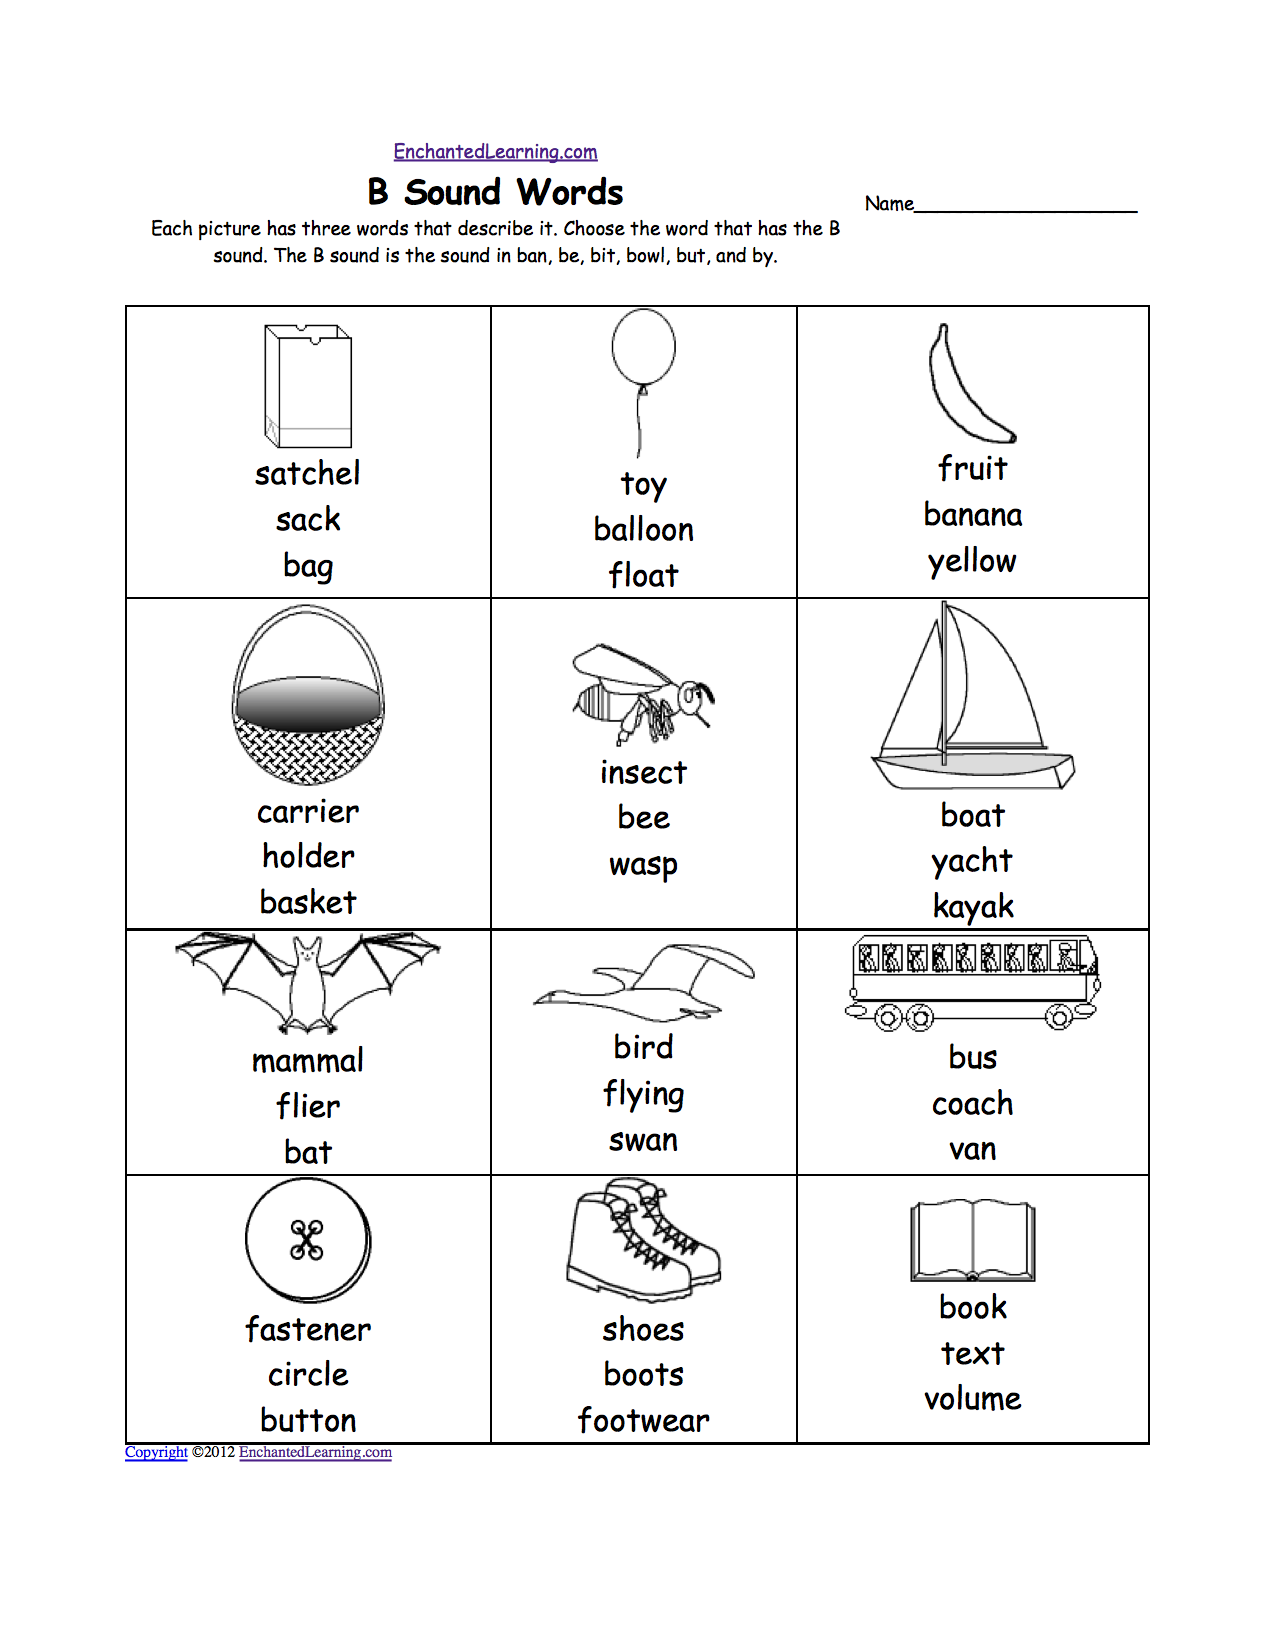 Weirdmailus  Surprising Phonics Worksheets Multiple Choice Worksheets To Print  With Engaging Quotbquot Sound Phonics Worksheet Multiple Choice Each Picture Has Three Words That Describe It Choose The Word That Has A Quotbquot Sound The Quotbquot Sound Is The Sound  With Astonishing Read Theory Comprehension Worksheets Also Free Addition Worksheets For Kindergarten In Addition The Work Of Gregor Mendel Worksheet And Past Continuous Worksheets As Well As Volume And Surface Area Of Triangular Prisms Worksheets Additionally Note Taking Worksheet Energy Answers From Enchantedlearningcom With Weirdmailus  Engaging Phonics Worksheets Multiple Choice Worksheets To Print  With Astonishing Quotbquot Sound Phonics Worksheet Multiple Choice Each Picture Has Three Words That Describe It Choose The Word That Has A Quotbquot Sound The Quotbquot Sound Is The Sound  And Surprising Read Theory Comprehension Worksheets Also Free Addition Worksheets For Kindergarten In Addition The Work Of Gregor Mendel Worksheet From Enchantedlearningcom